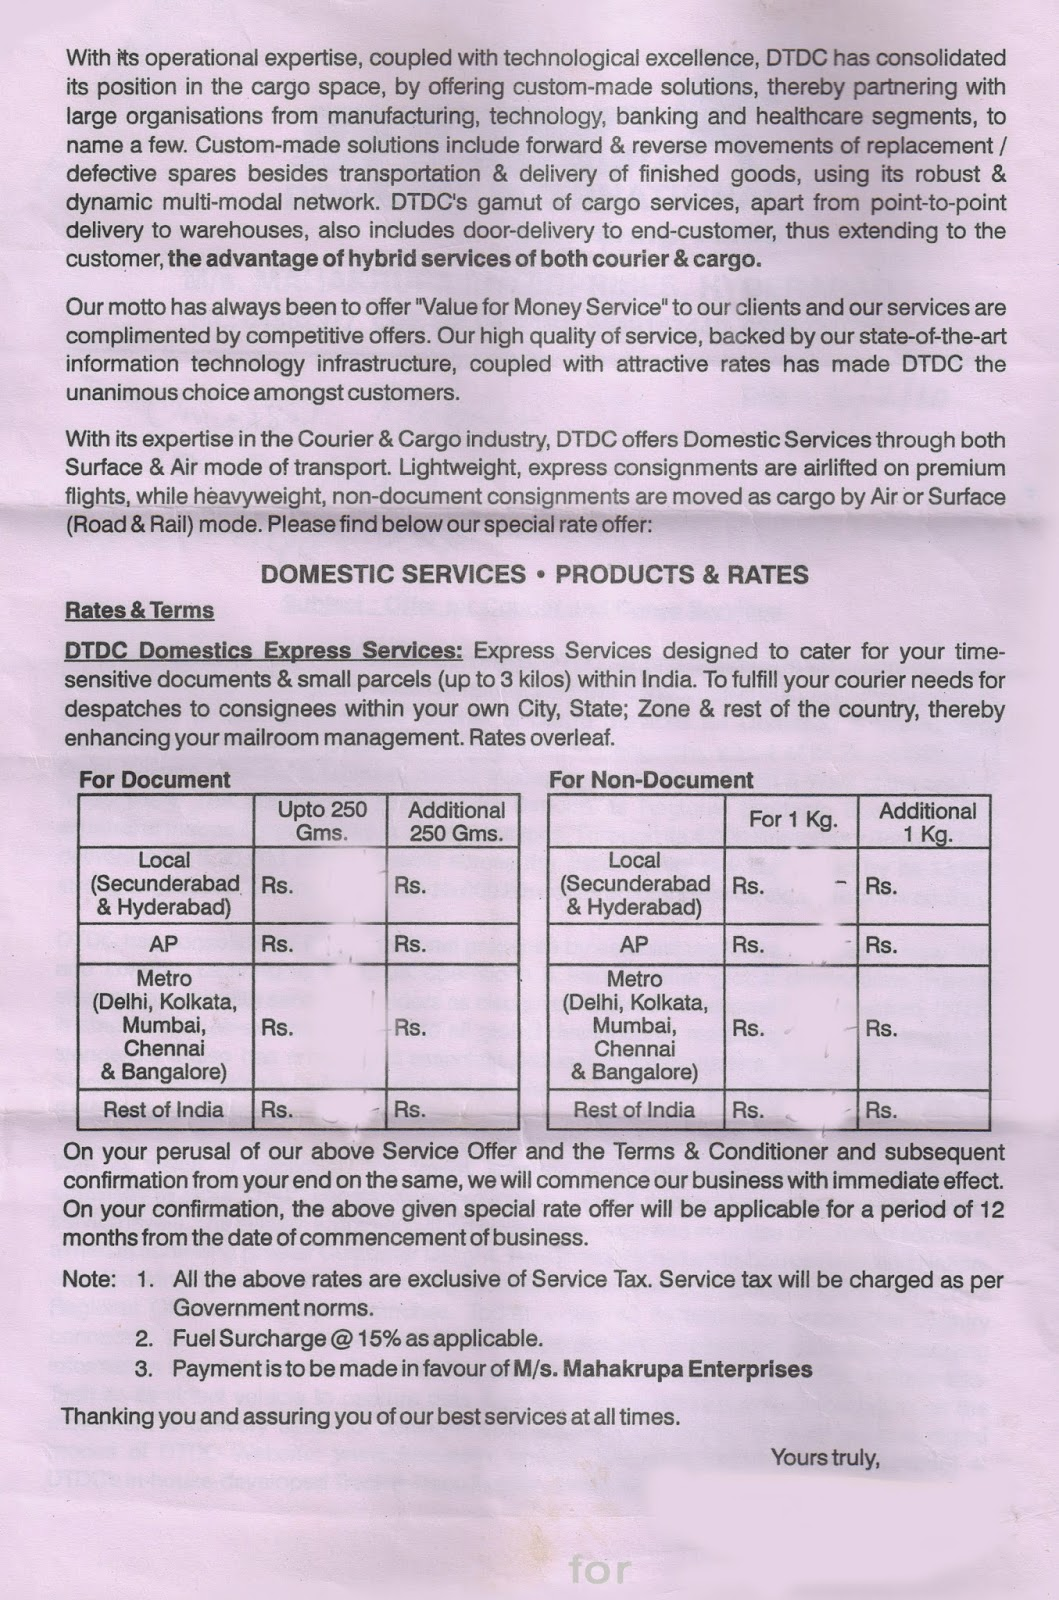 Couriers & Cargo Experts Guide: Couriers Quotation sample